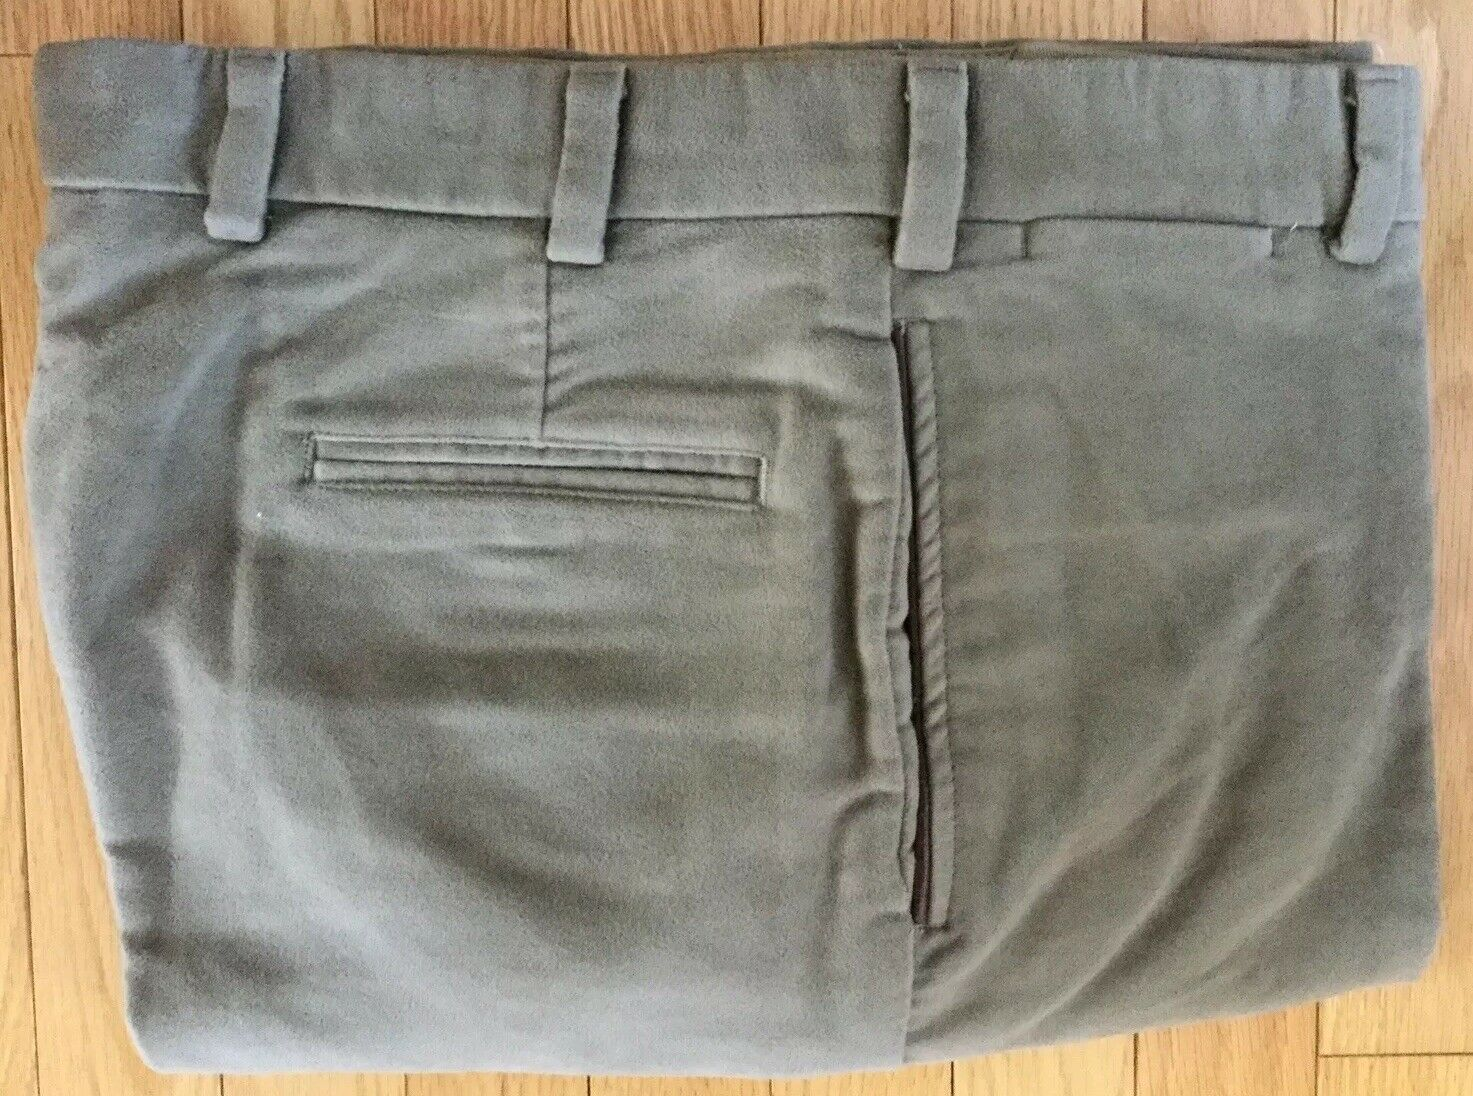 10f9cd81 NWOT-Bills khakis M2- STANDARD Size 37X29 OLIVE MSRP MOLESKIN PLAIN  aframc2183-Pants